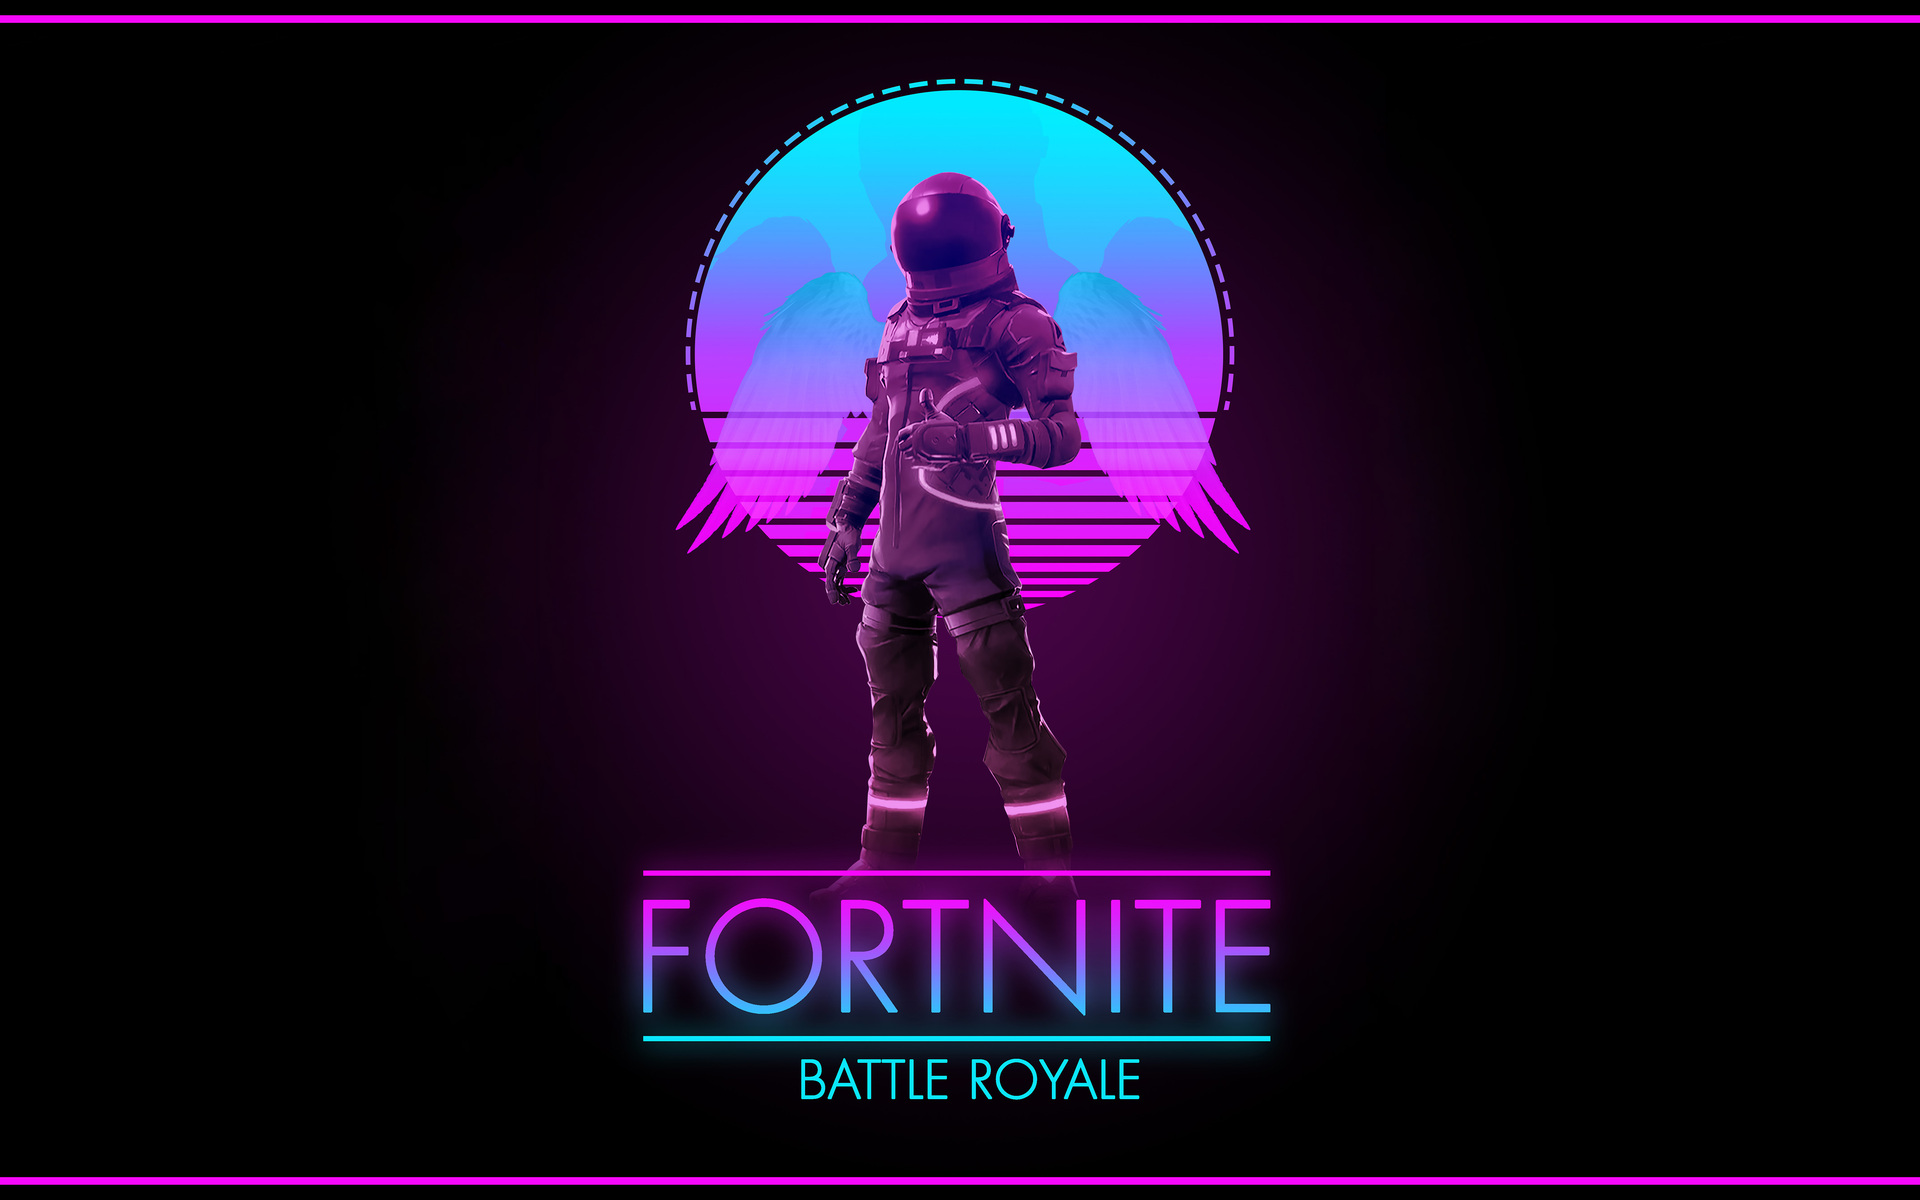 1920x1200 2018 Fortnite 5k 1080p Resolution Hd 4k Wallpapers Images